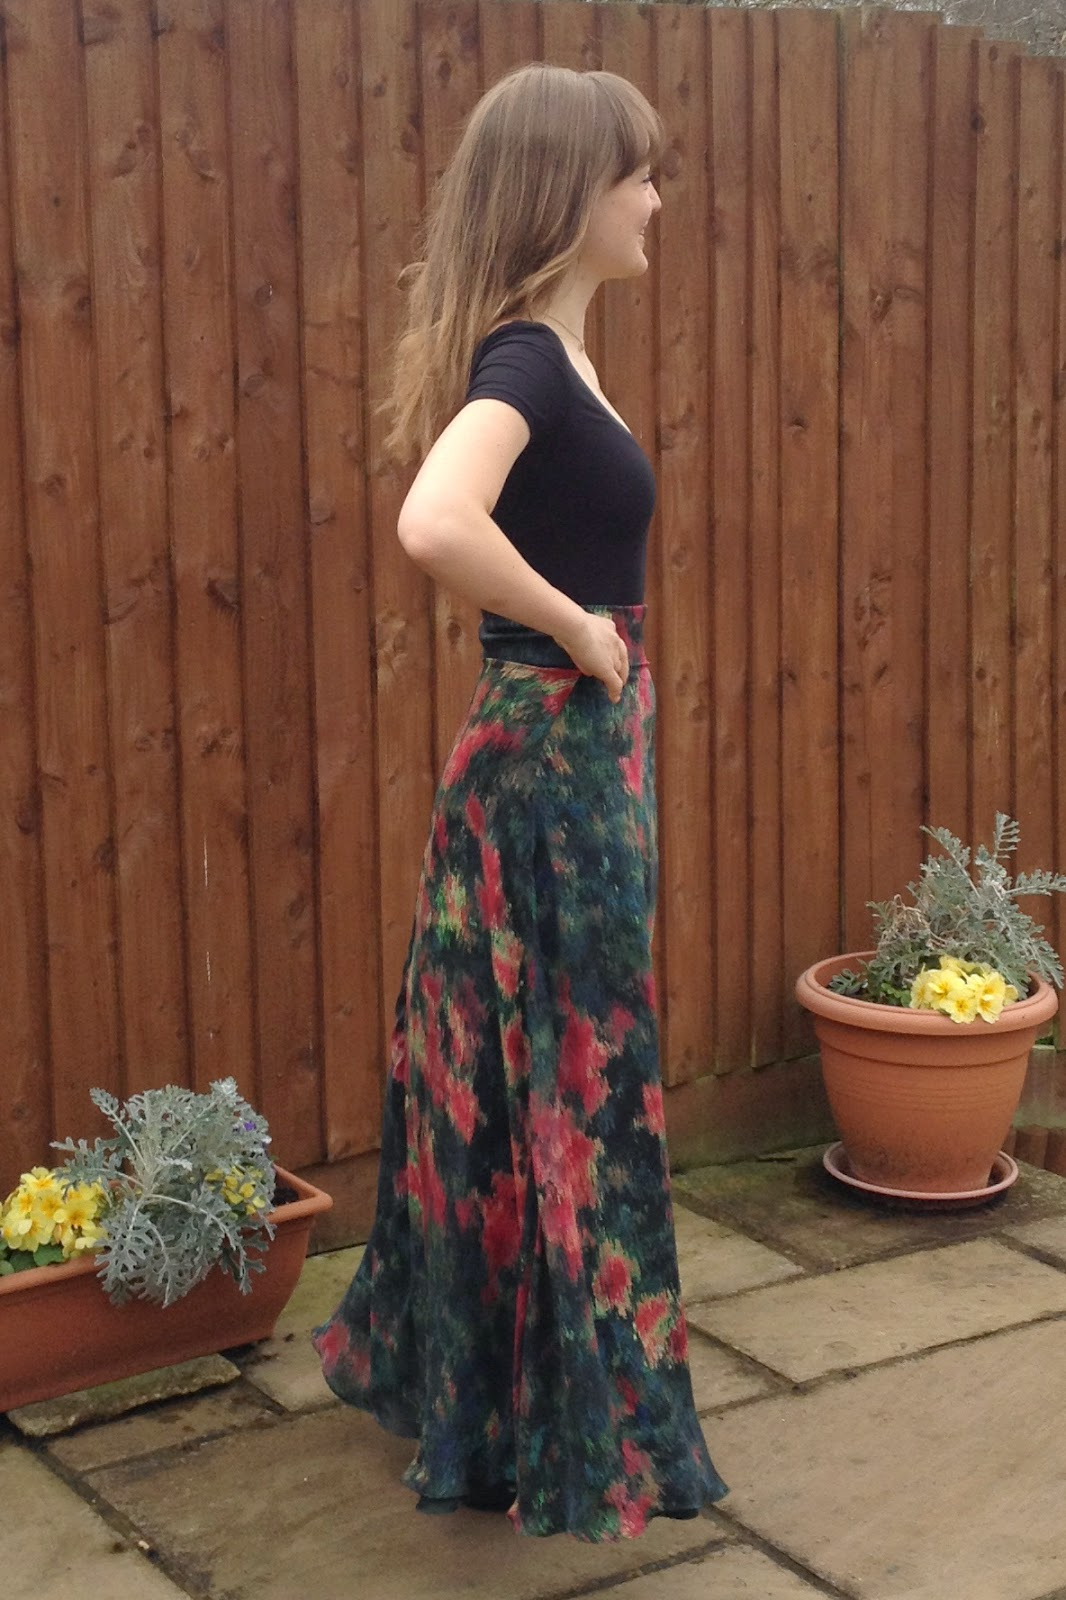 Diary of a Chain Stitcher: Printed Silk Maxi Skirt and Bamboo Jersey Bodysuit with Mood Fabrics